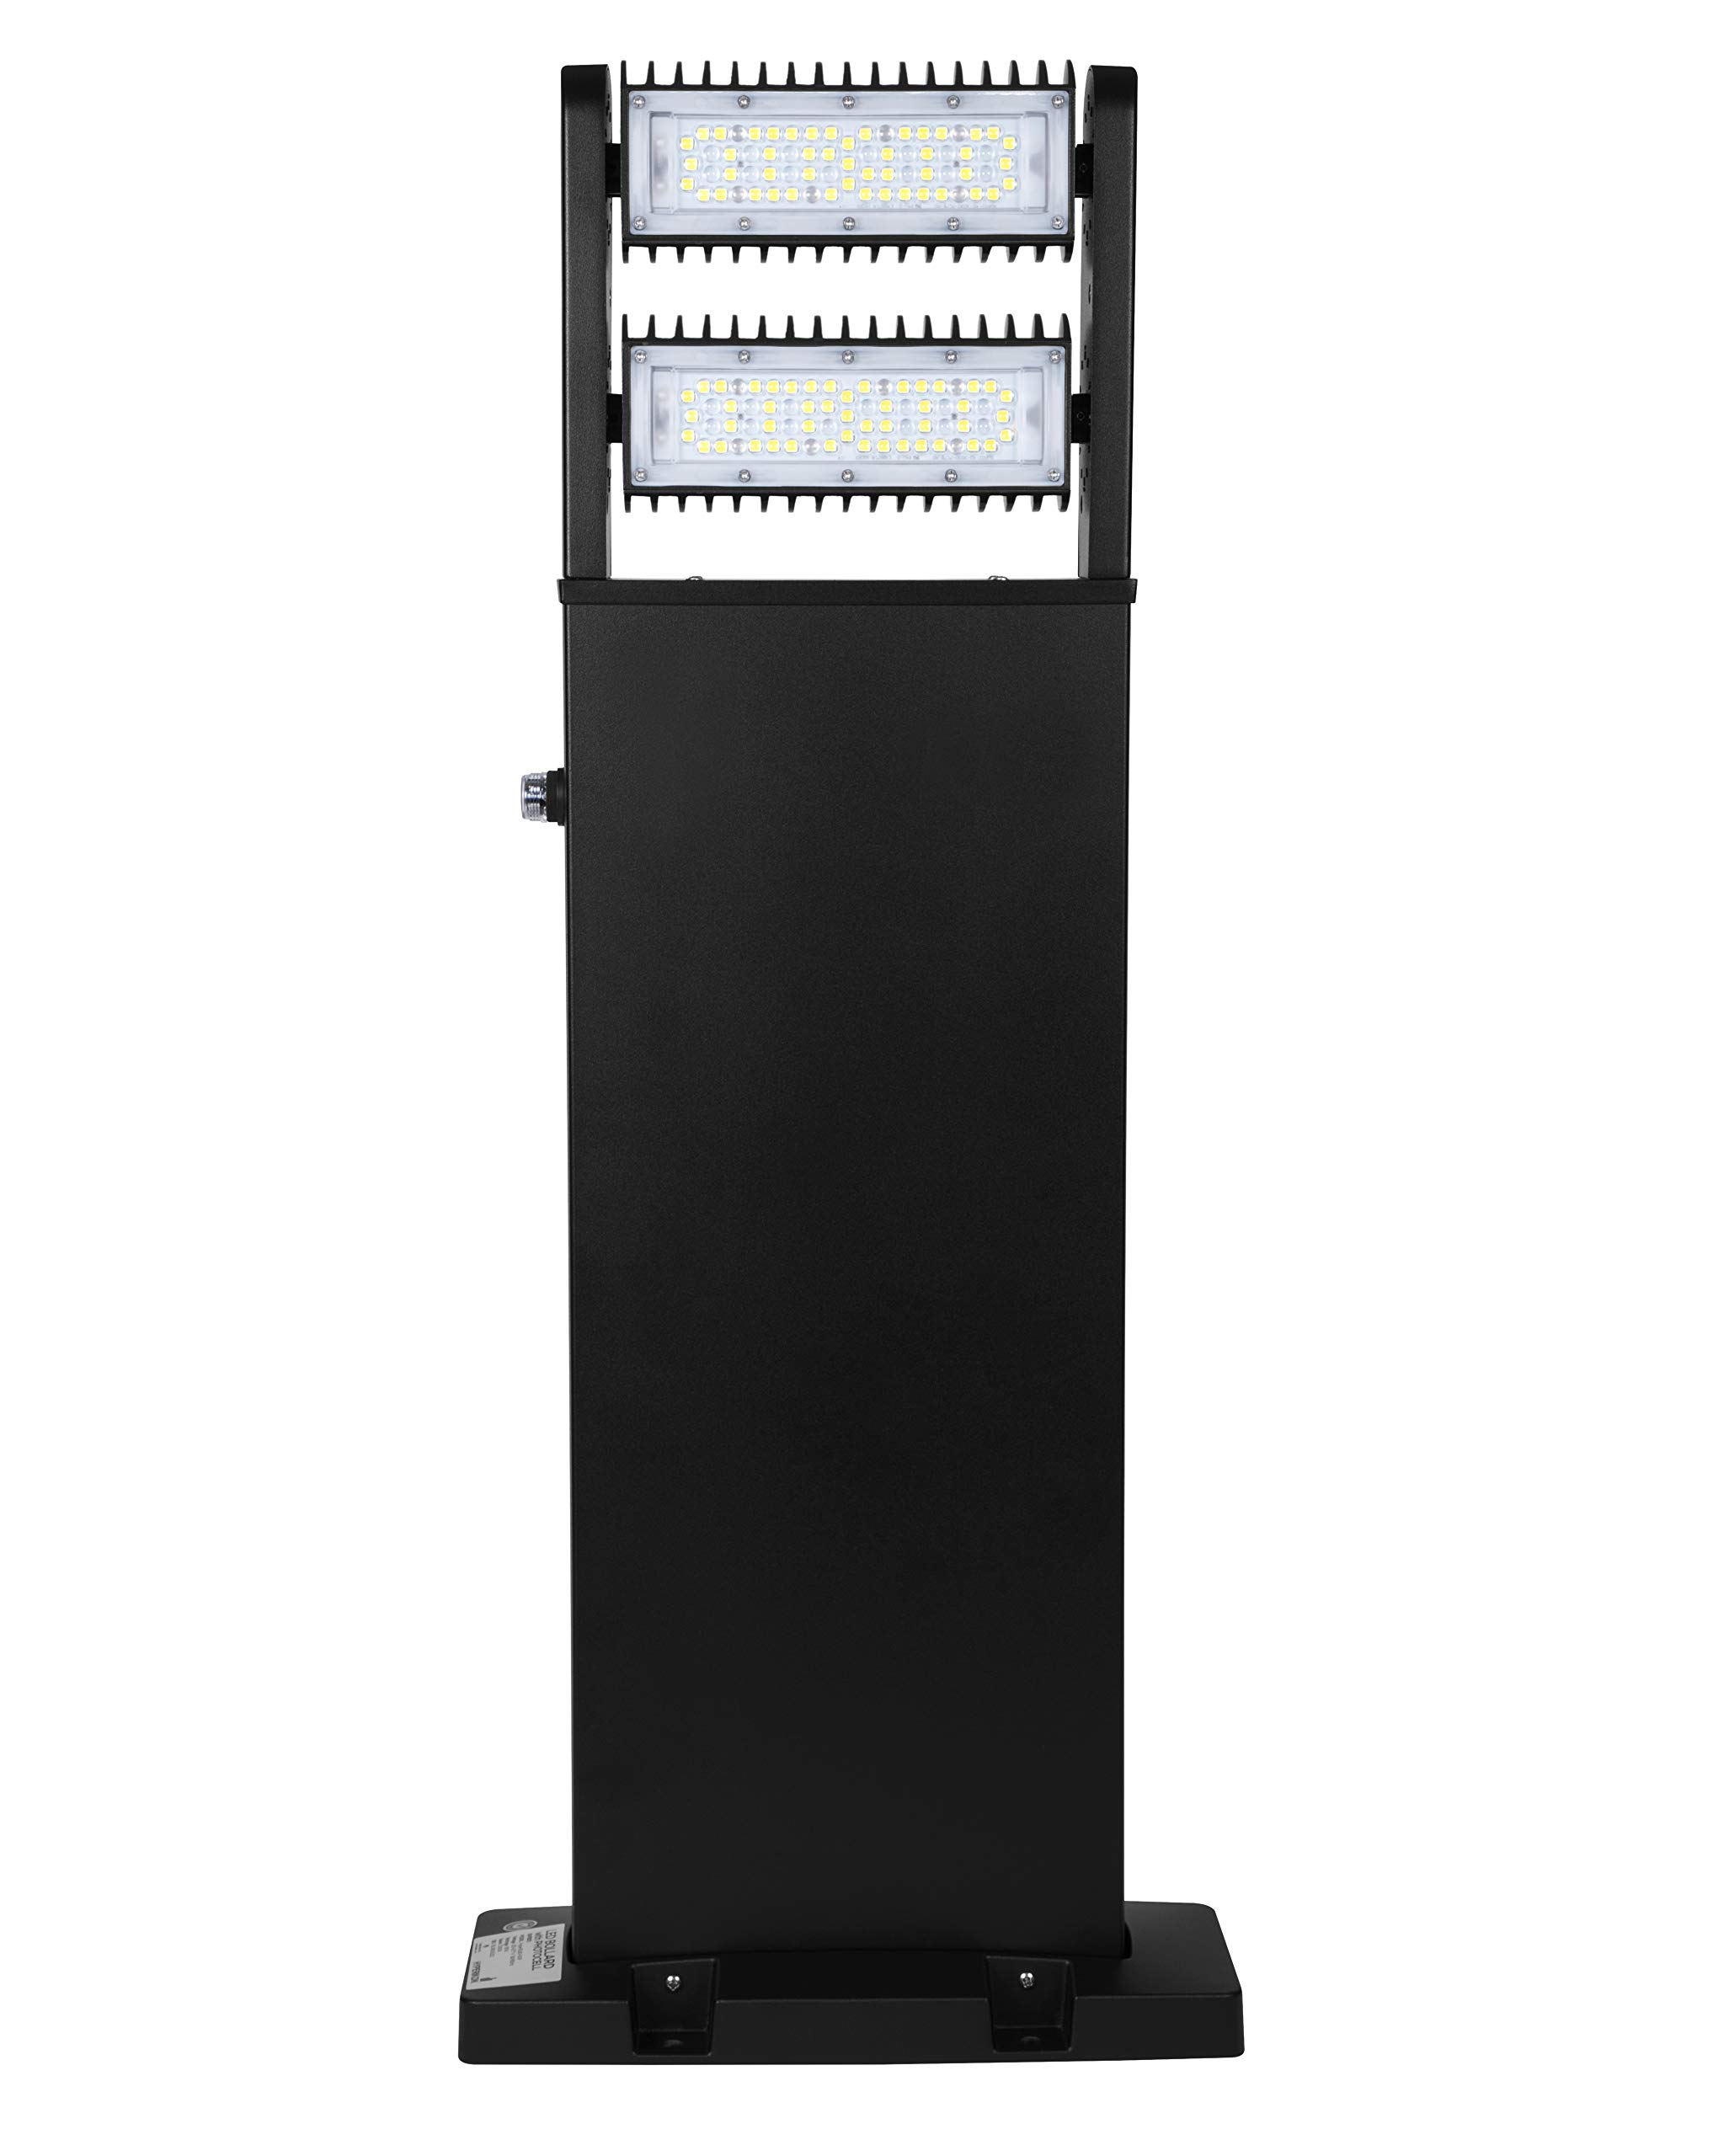 Hyperikon LED Bollard Light, 80W 32 Inch Square, Outdoor Landscape Lighting Pole, 5000K, IP65, Rotatable Light Head